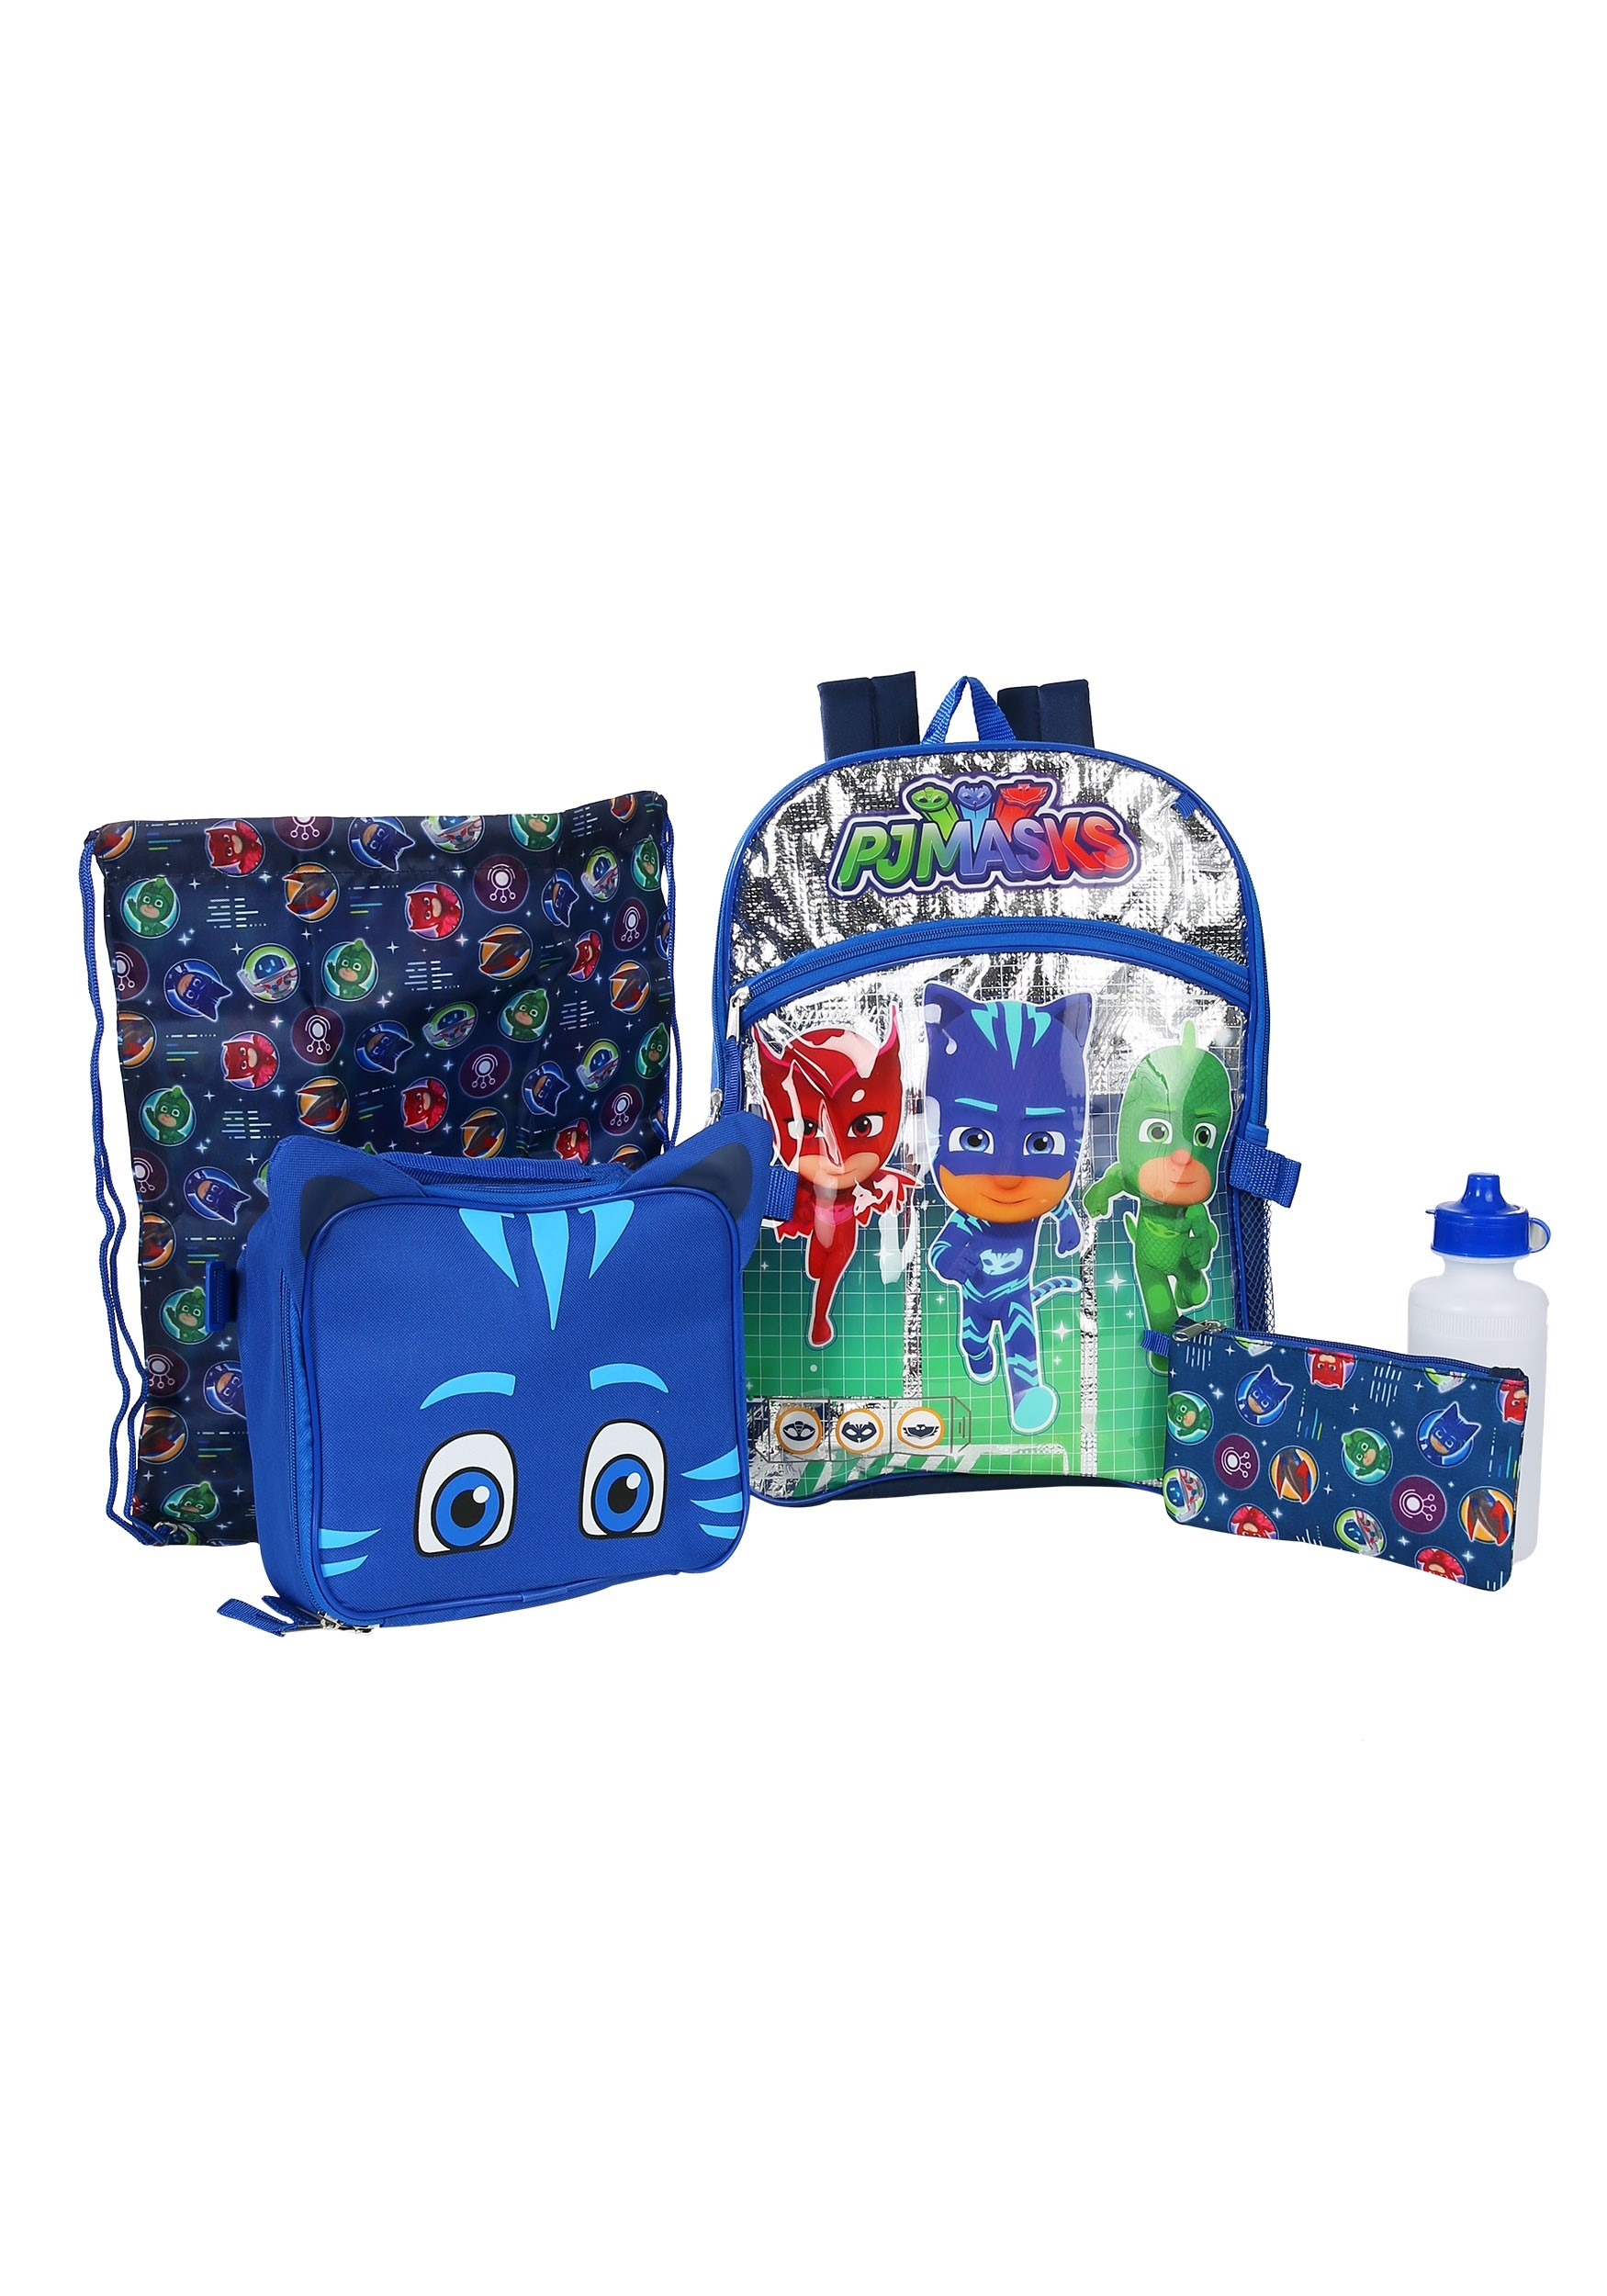 16_Backpack_5_Piece_Set_Kids_PJ_Masks